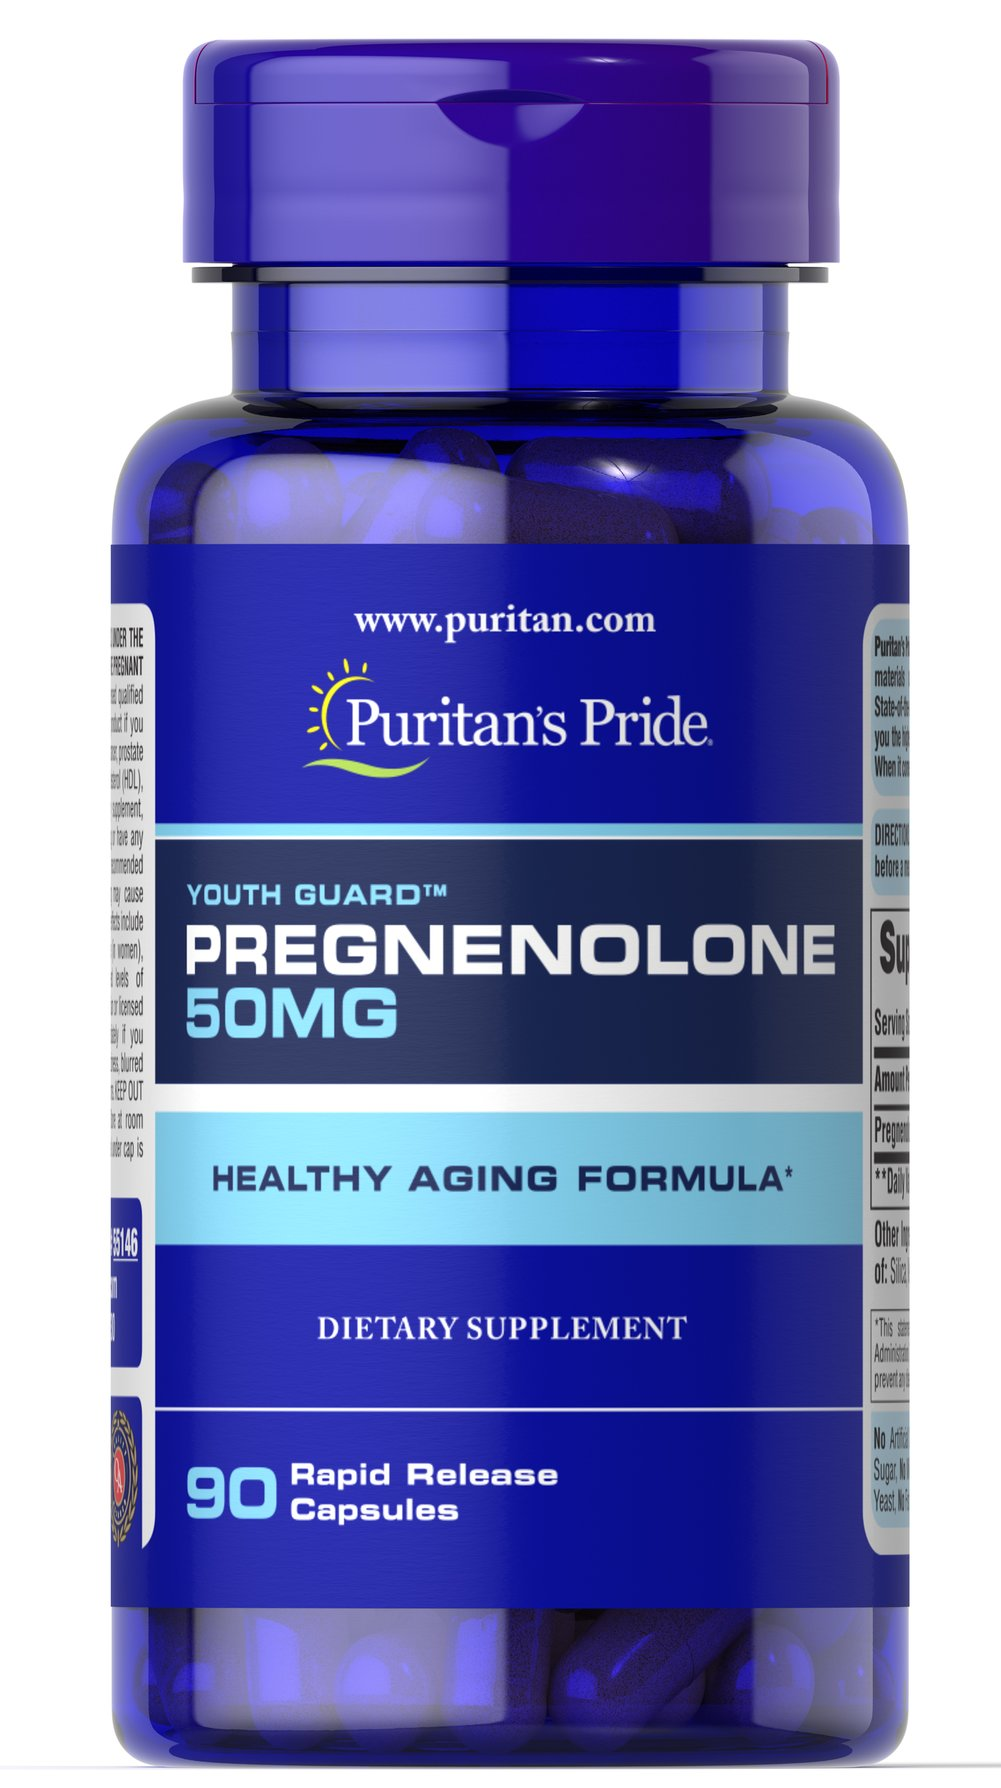 Pregnenolone 50 mg <p>Pregnenolone is a substance our bodies produce in the adrenal glands and liver . Since Pregnenolone levels can decline with age, just one serving a day of Puritan's Pride Pregnenolone can contribute to your healthy aging regimen.**</p> 90 Capsules 50 mg $14.99